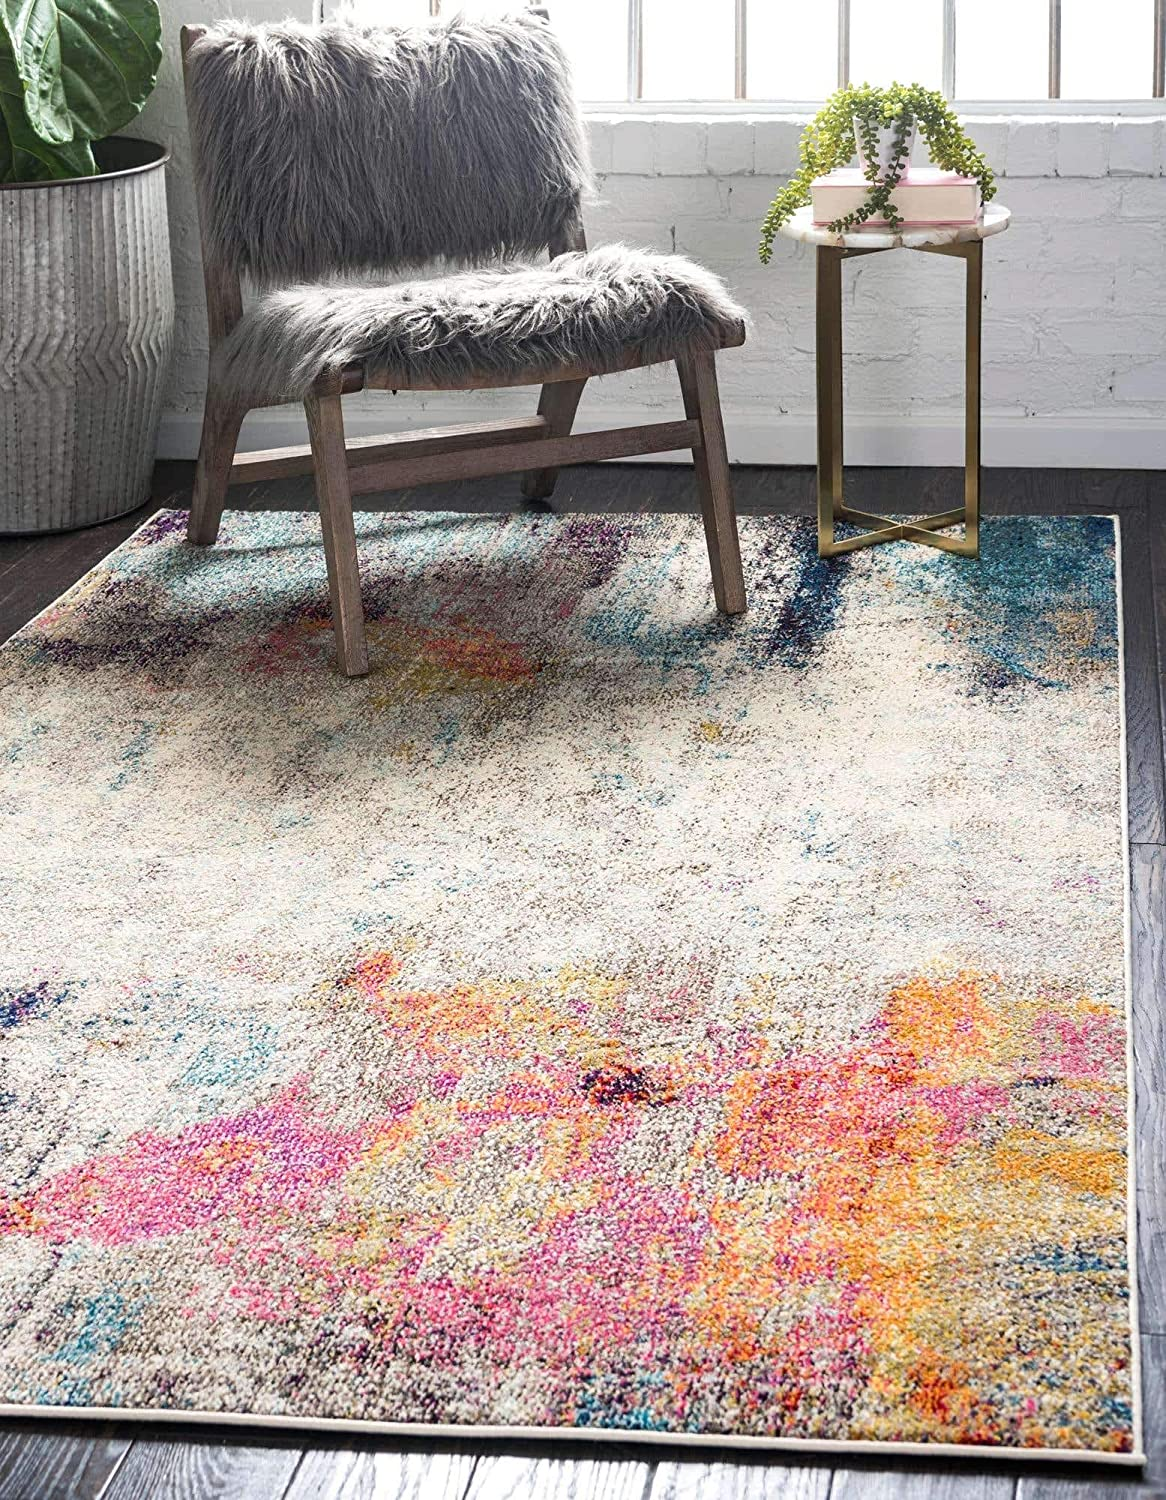 Unique Loom Chromatic Collection Modern Abstract Rustic Area Rug, 7' x 10', Beige/Pink